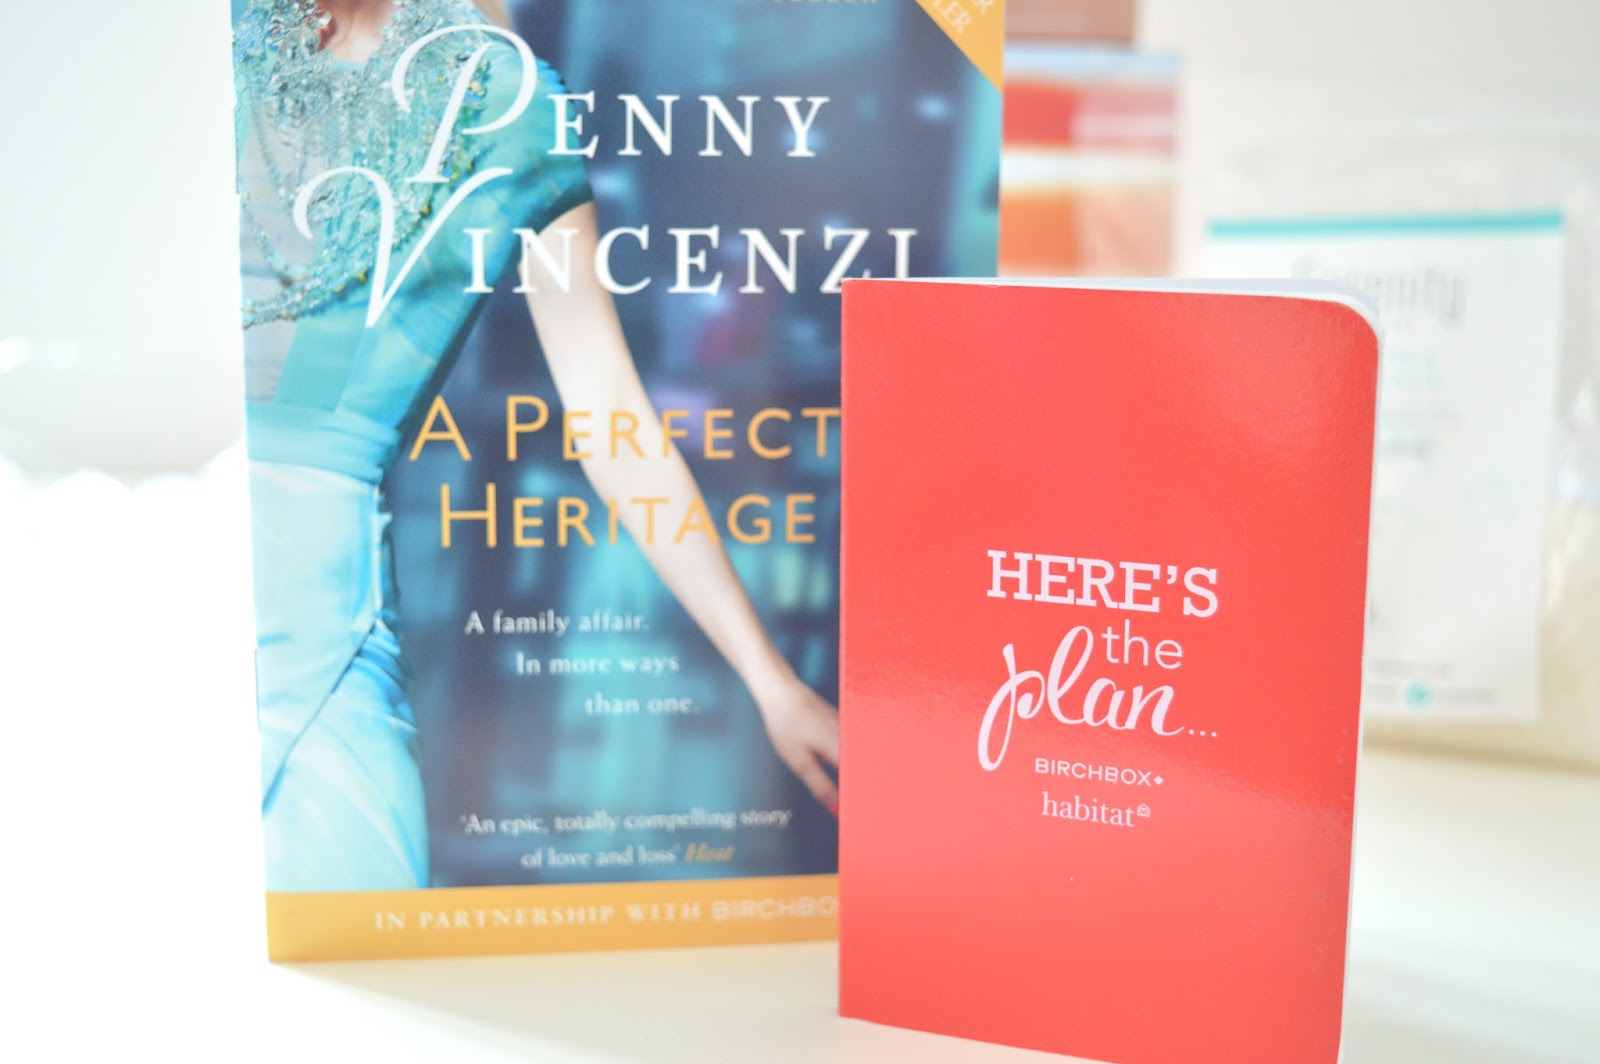 A Perfect Heritage by Penny Vincenzi and Habitat Birchbox Notepad